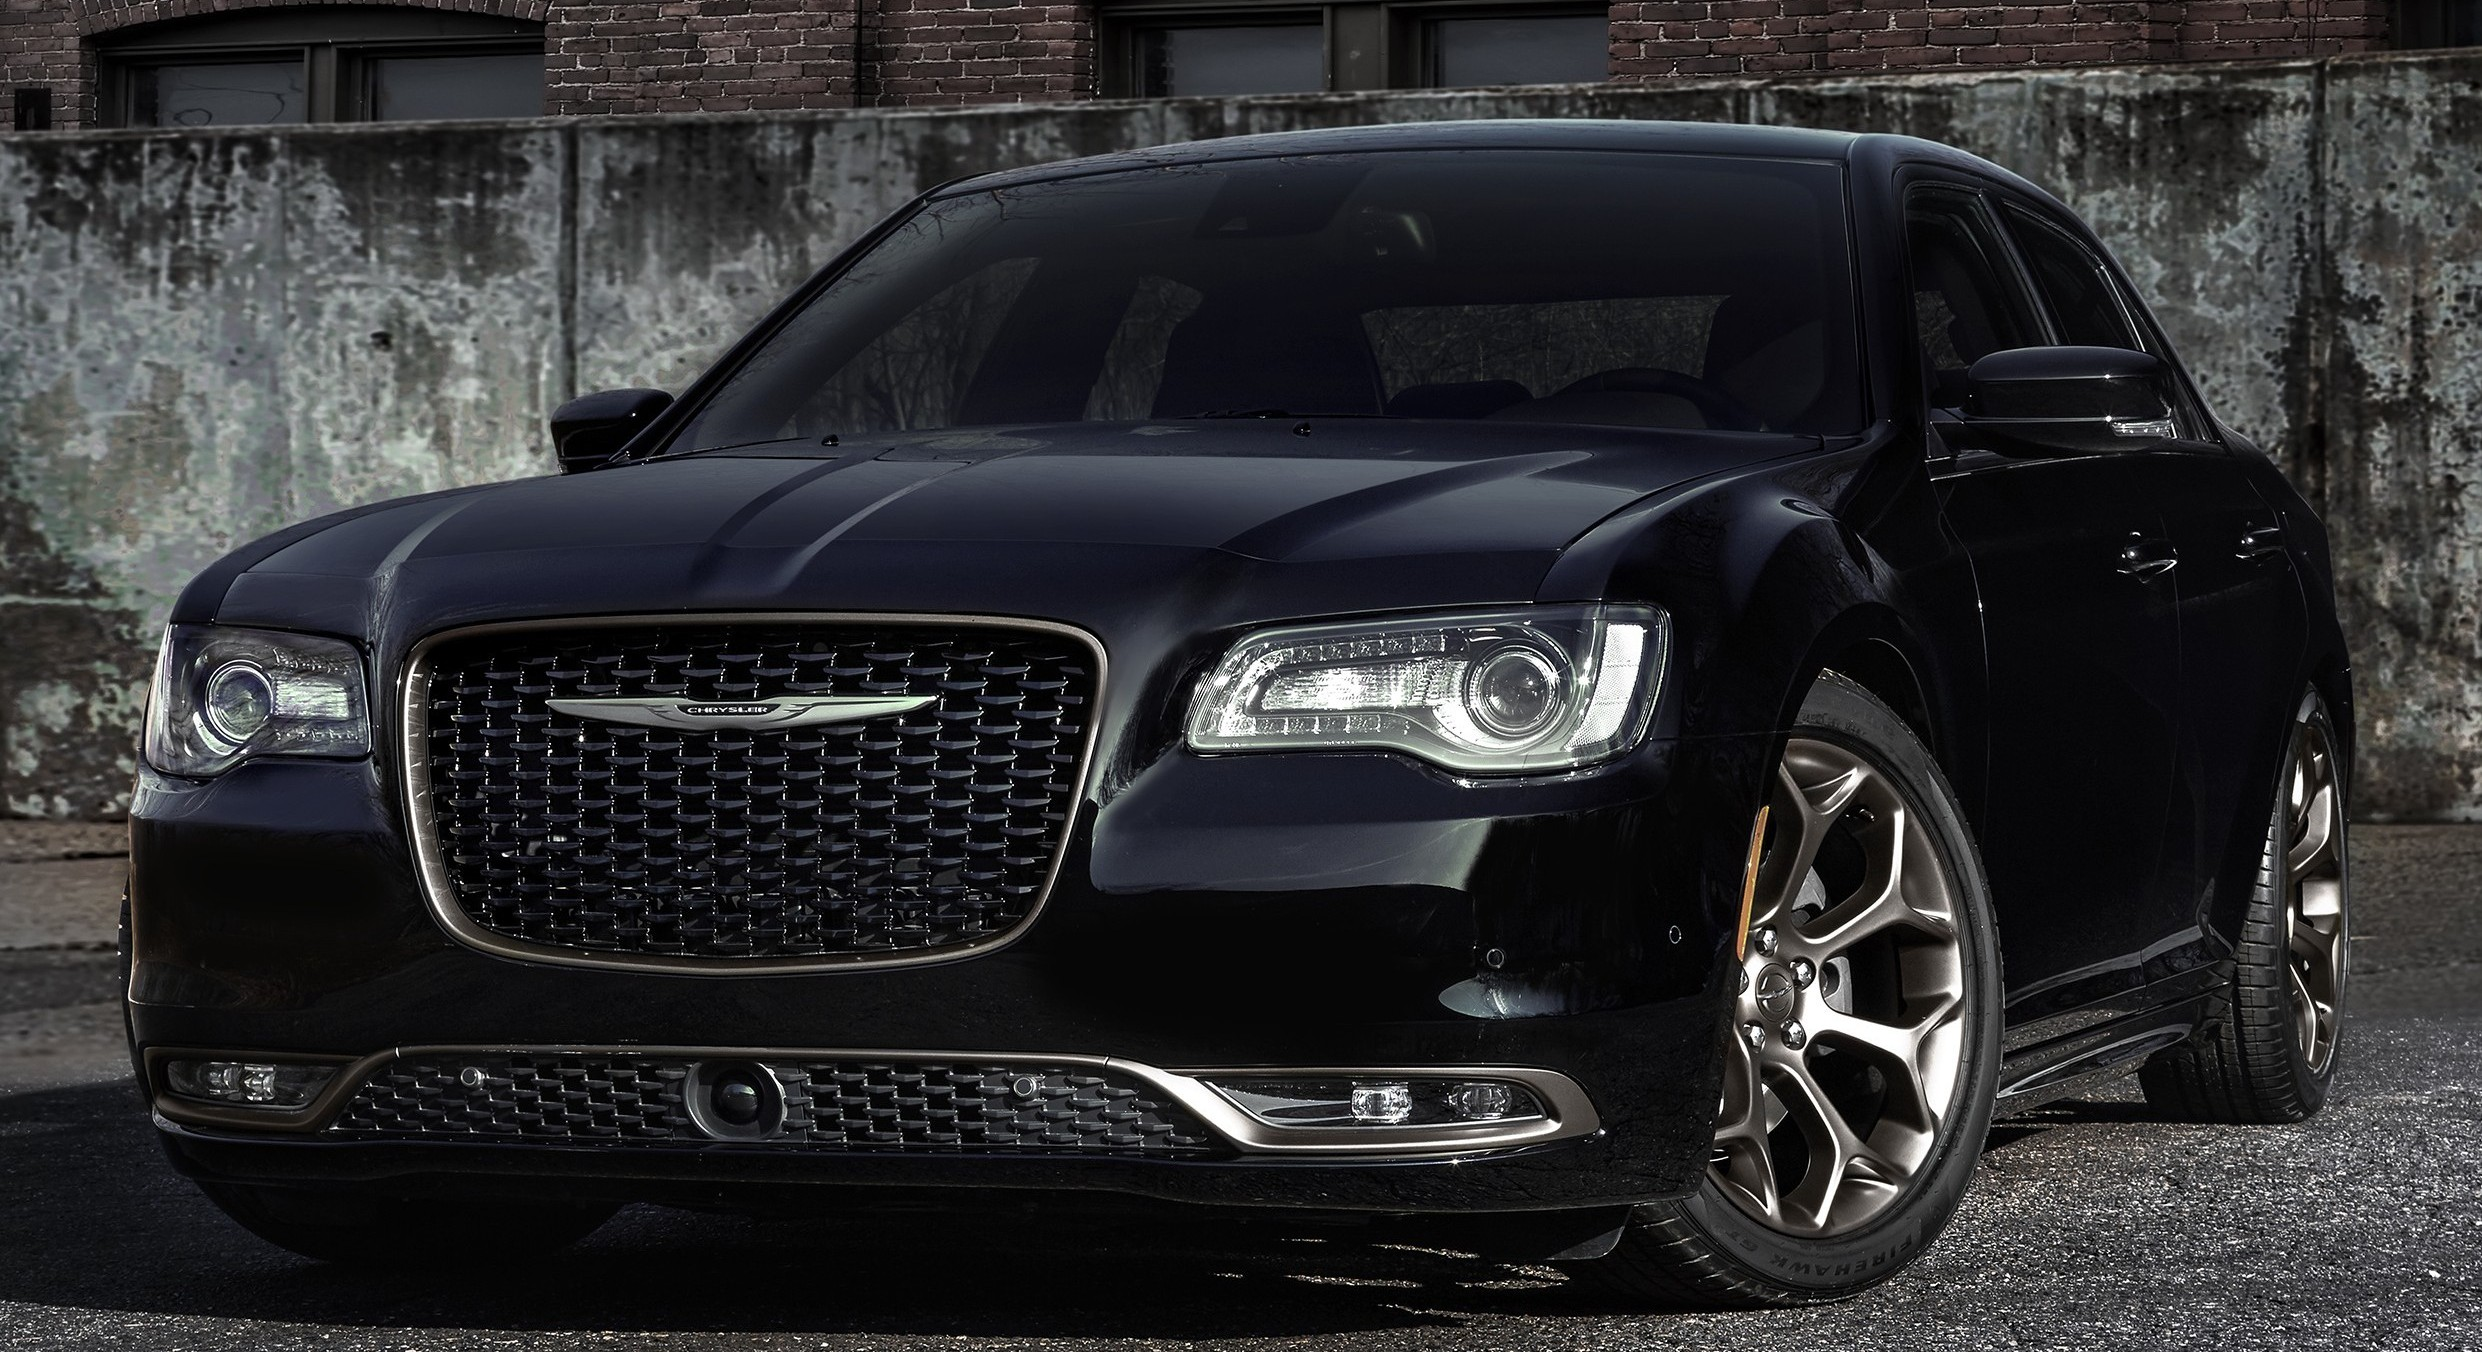 reviews chrysler msrp images ratings sport s with amazing news